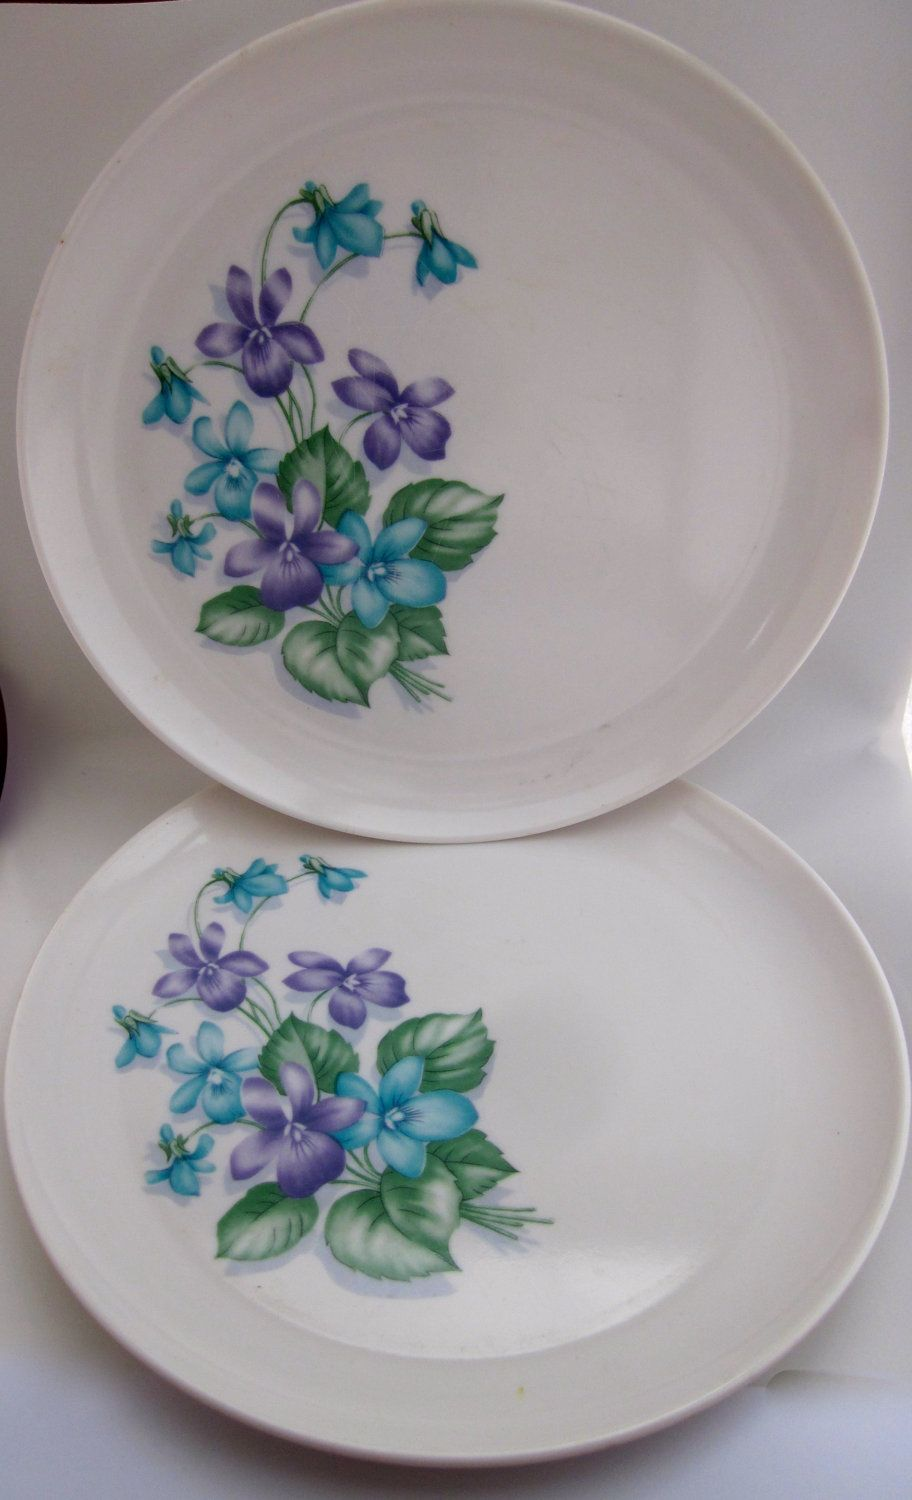 Vintage Plastic Melmac Dinnerware History Melamine  Marcrest Melmac of Chicago Royalon and Stetson Connected by Melamine & Vintage Plastic Melmac Dinnerware History Melamine : Marcrest Melmac ...